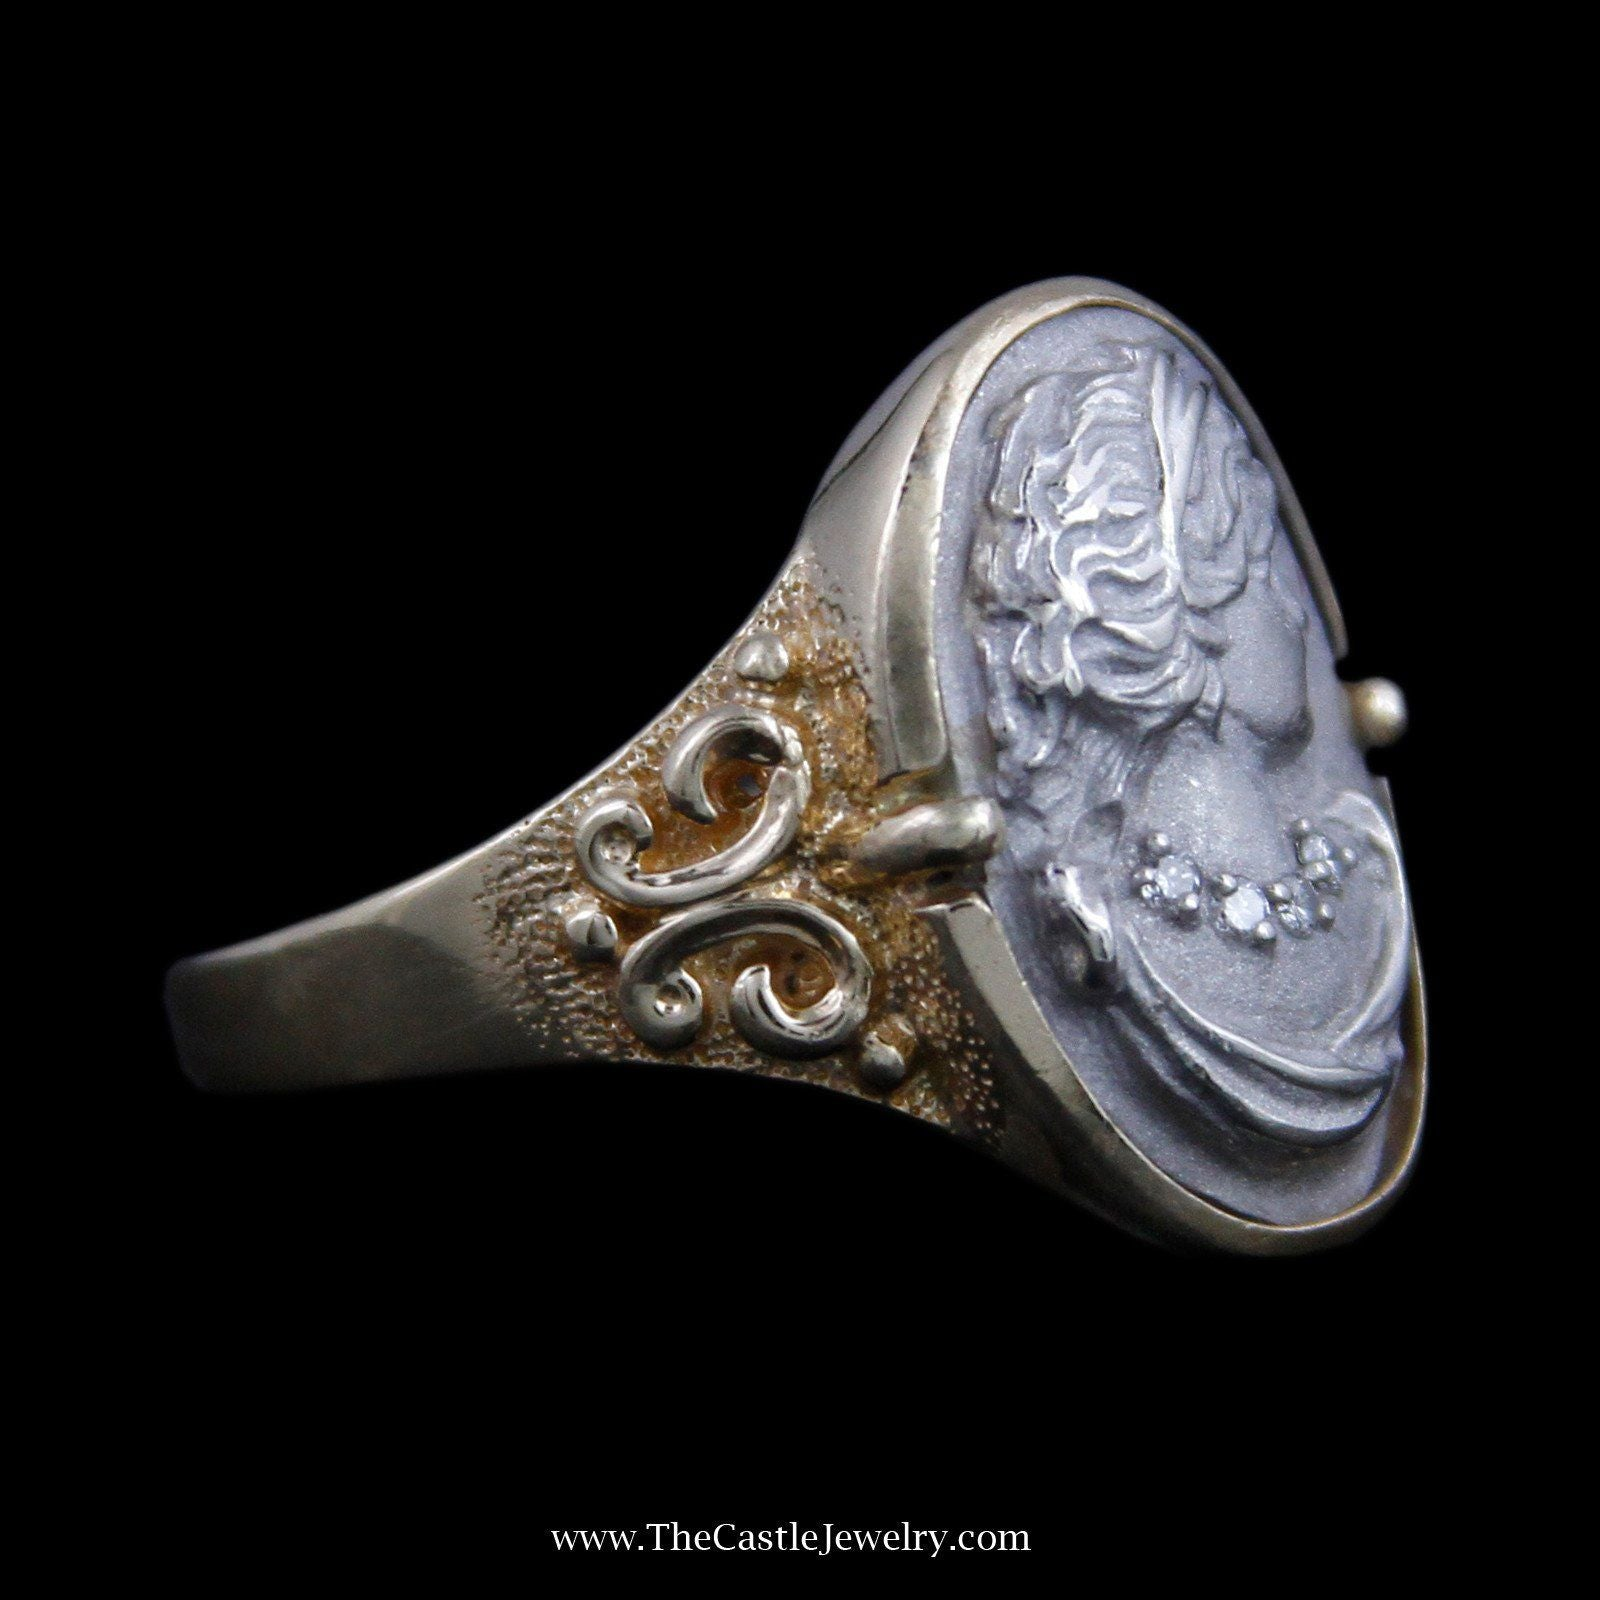 Unique Carved White Gold Cameo with Diamond Accents & Antique Style Mounting